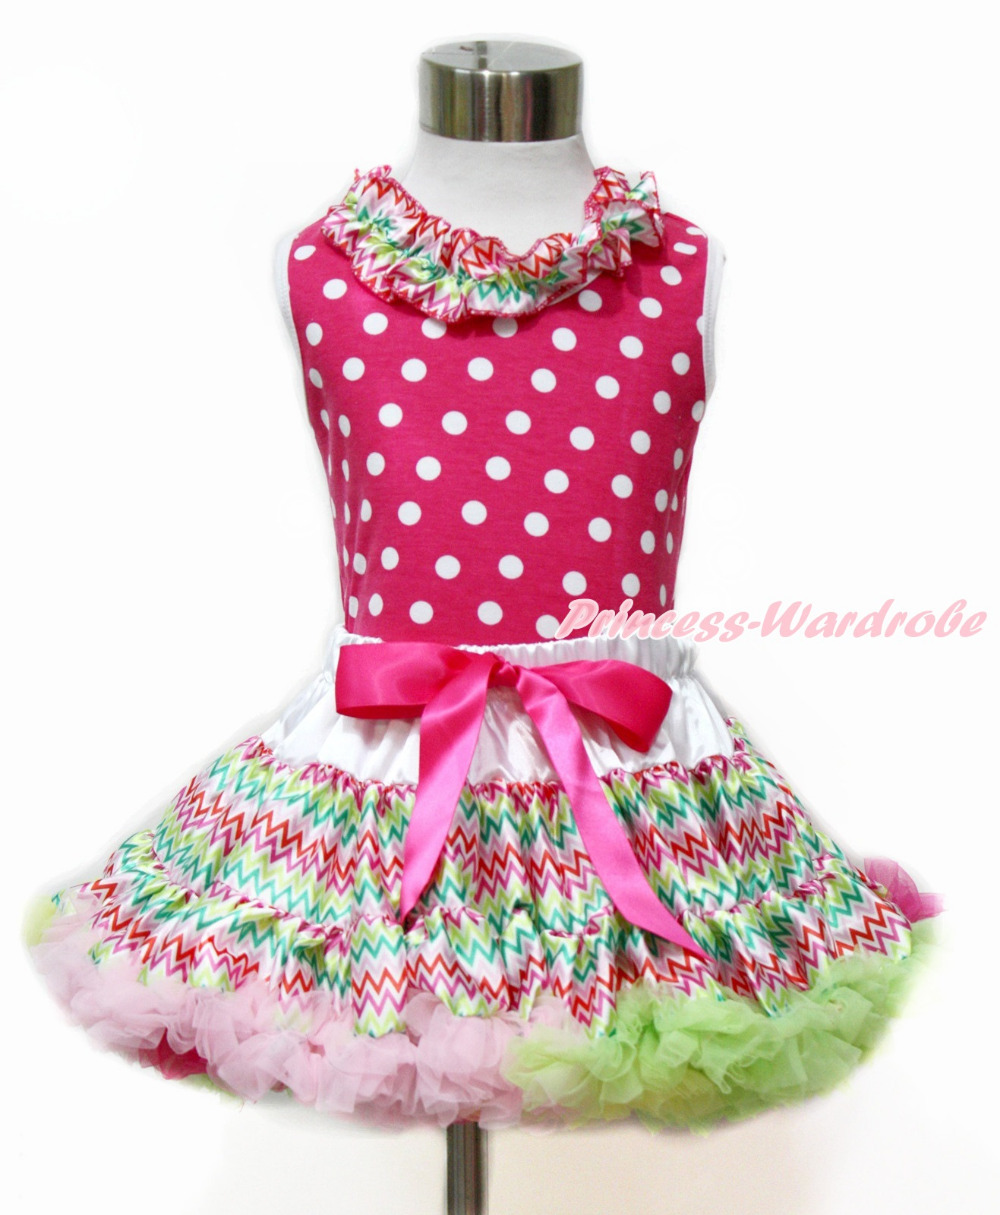 Easter Ruffle Lacing Hot Pink White Dots Top Rainbow Stripe Girl Pettiskirt Set 1-8Y MAMH166 hot pink top shirt camouflage lacing satin trim girl pettiskirt outfit set nb 8y mapsa0642